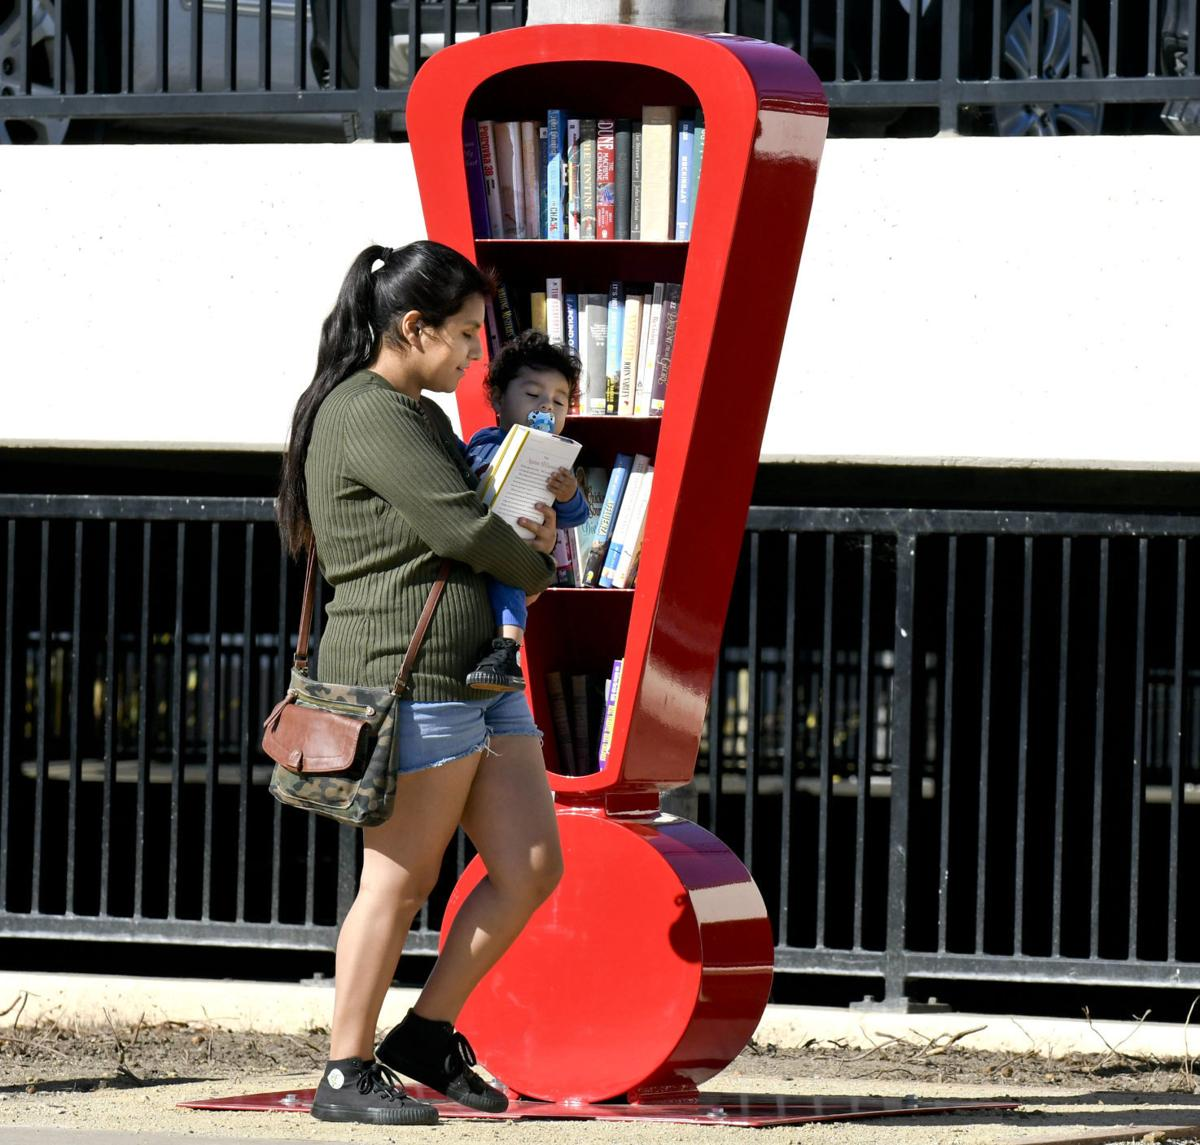 011420 Tiny Libraries exclamation mark 01.jpg